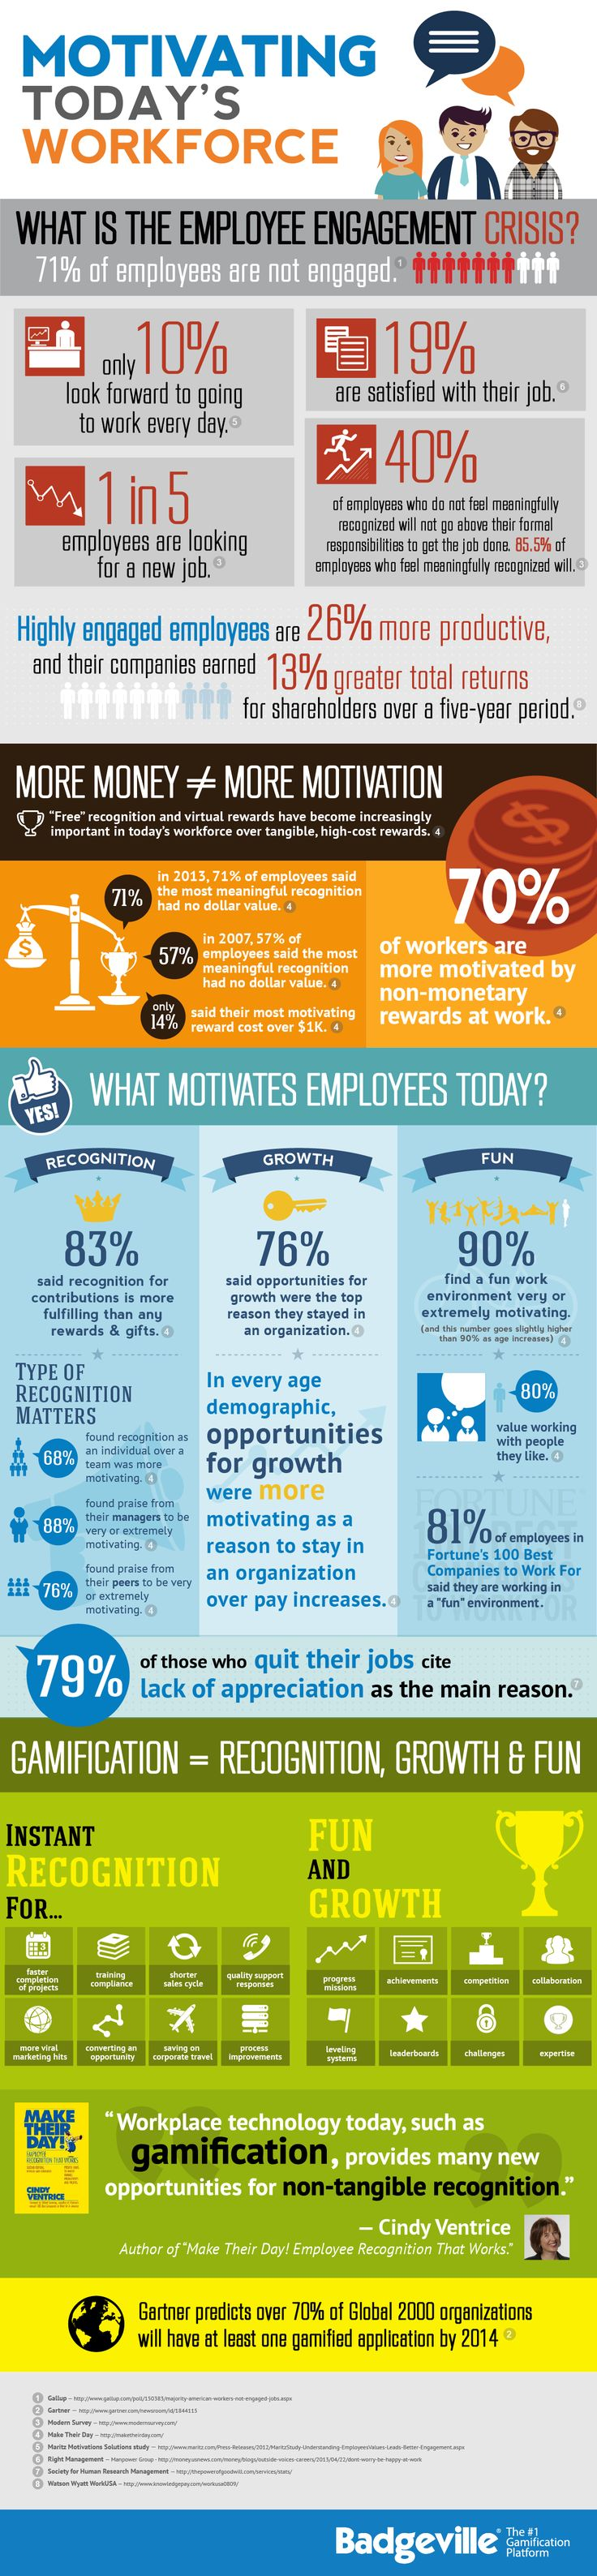 A motivated workforce is a productive workforce. But, what motivates people is not always what you think #infographic #Business www.socialmediamamma.com